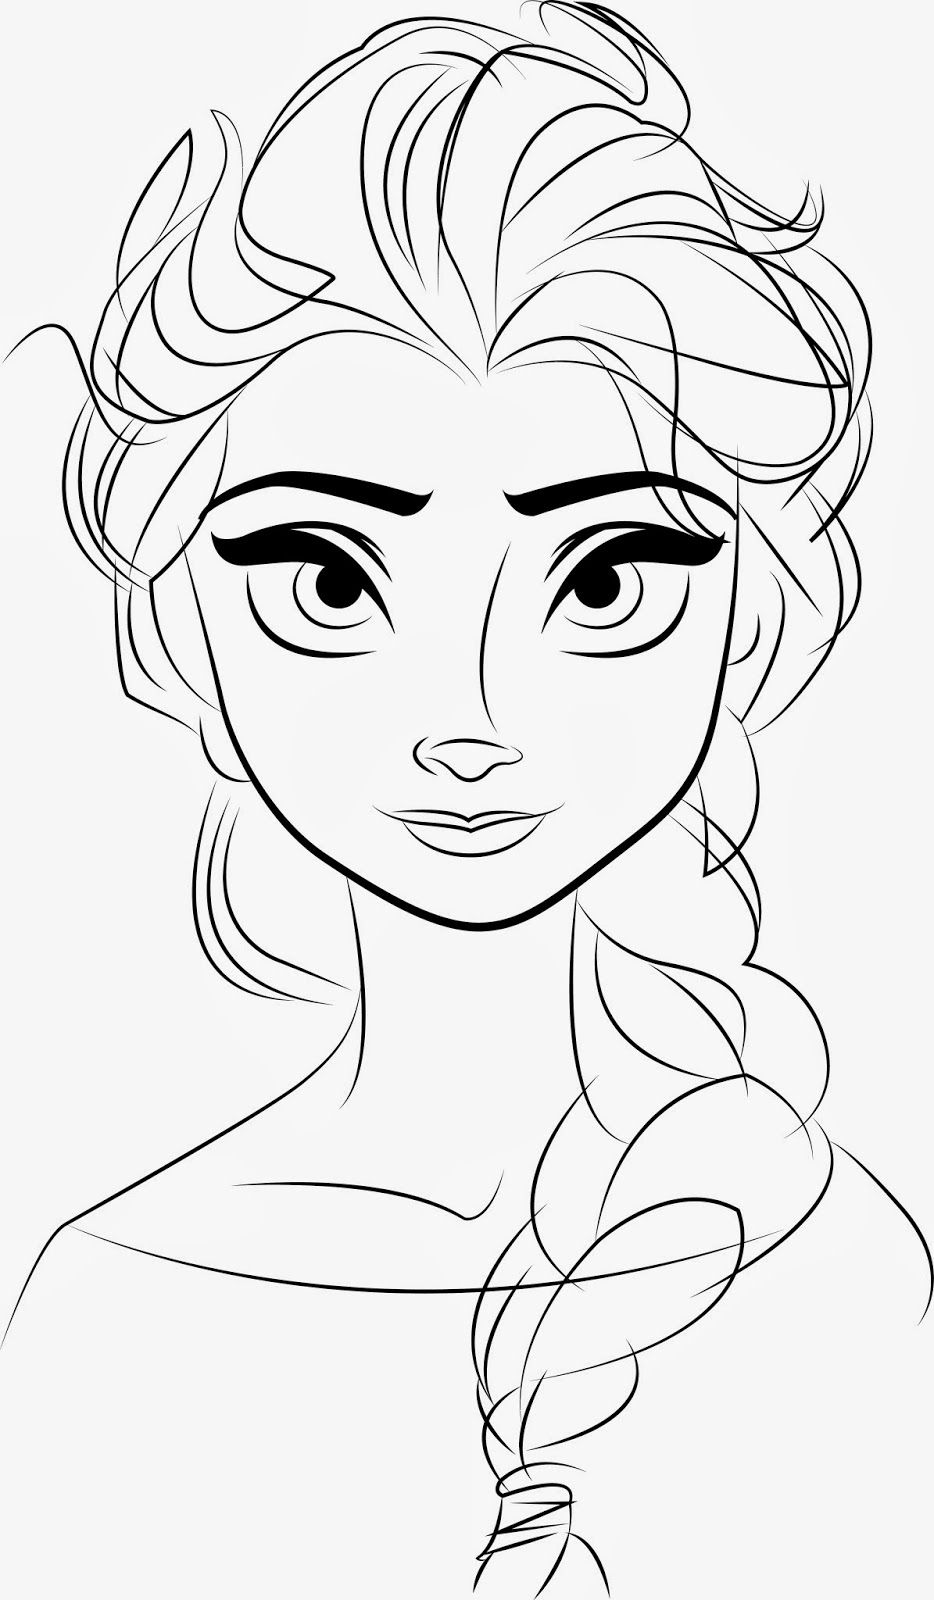 drawing frozen how to draw anna anna from frozen step by step disney frozen drawing